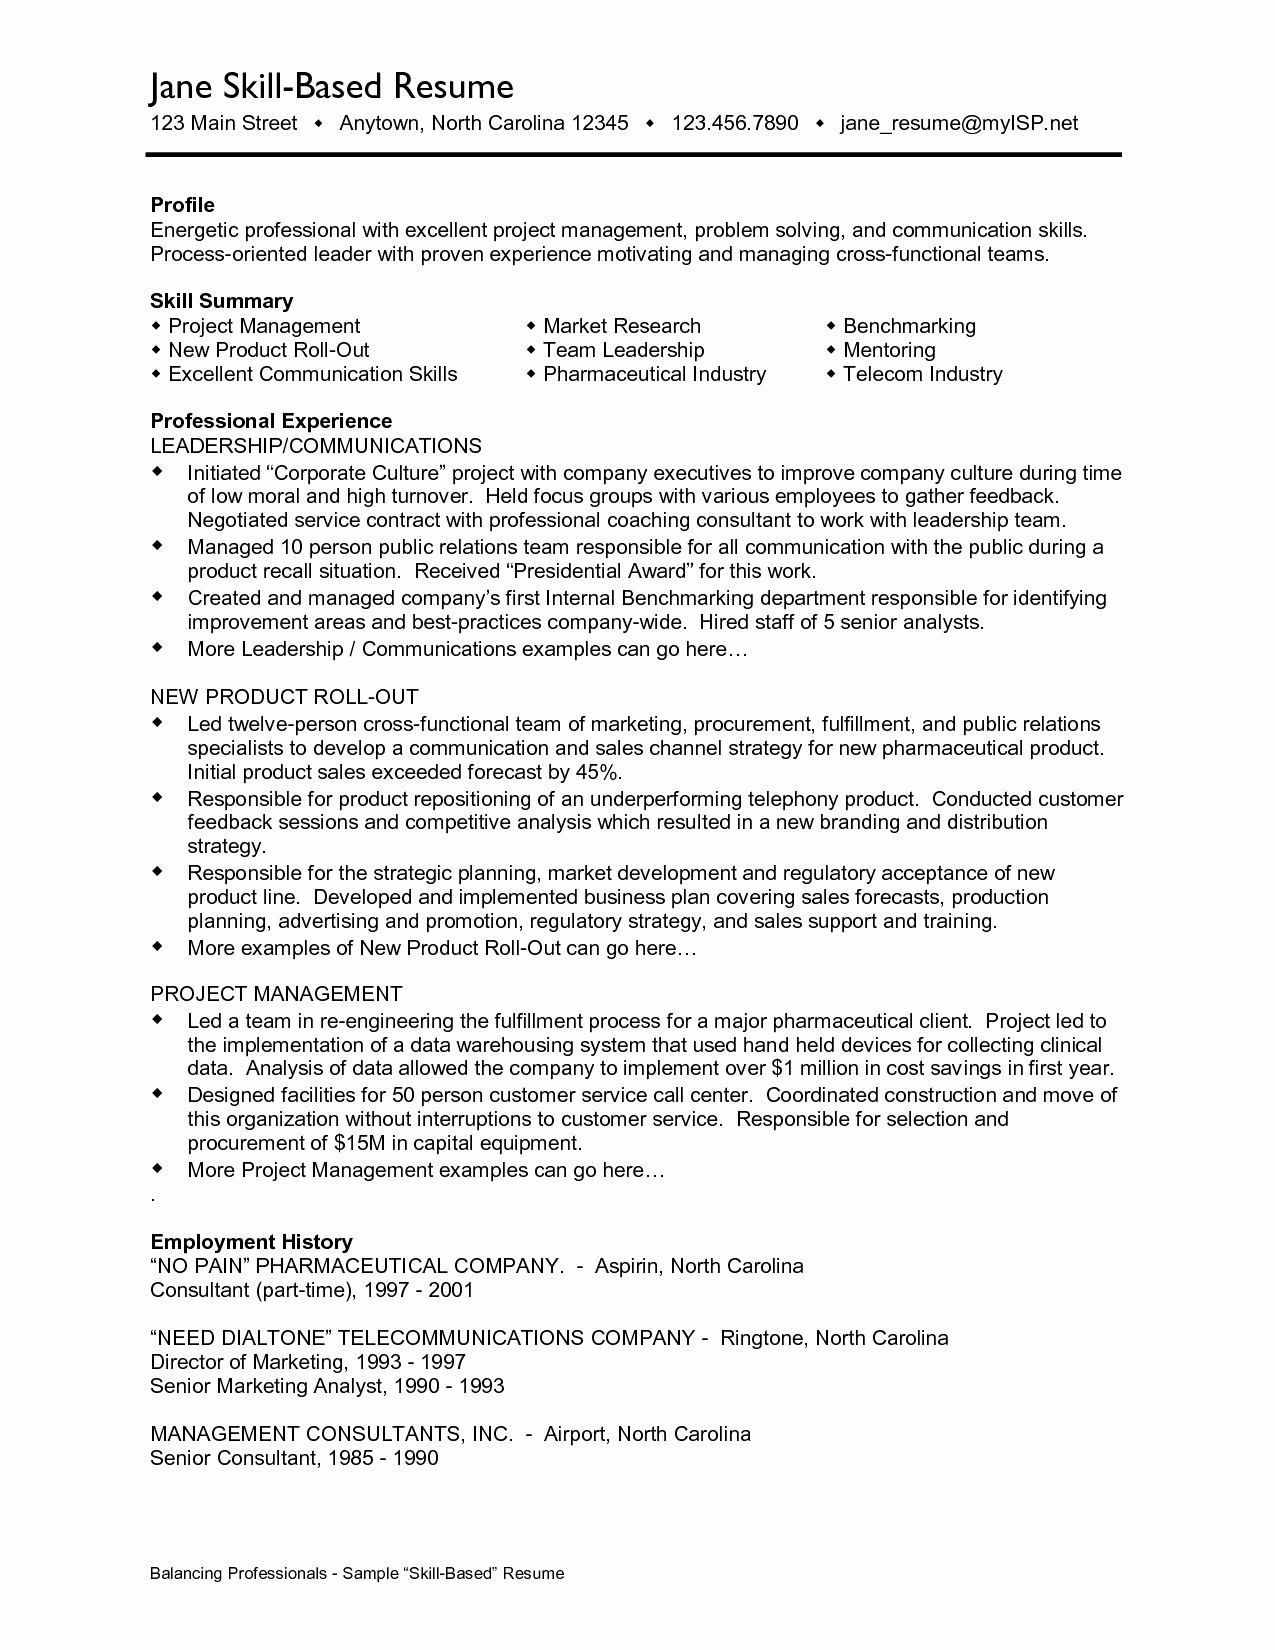 Cover Letter Layout Template - Sample Cover Letter for Finance Manager Position New Mcdonalds